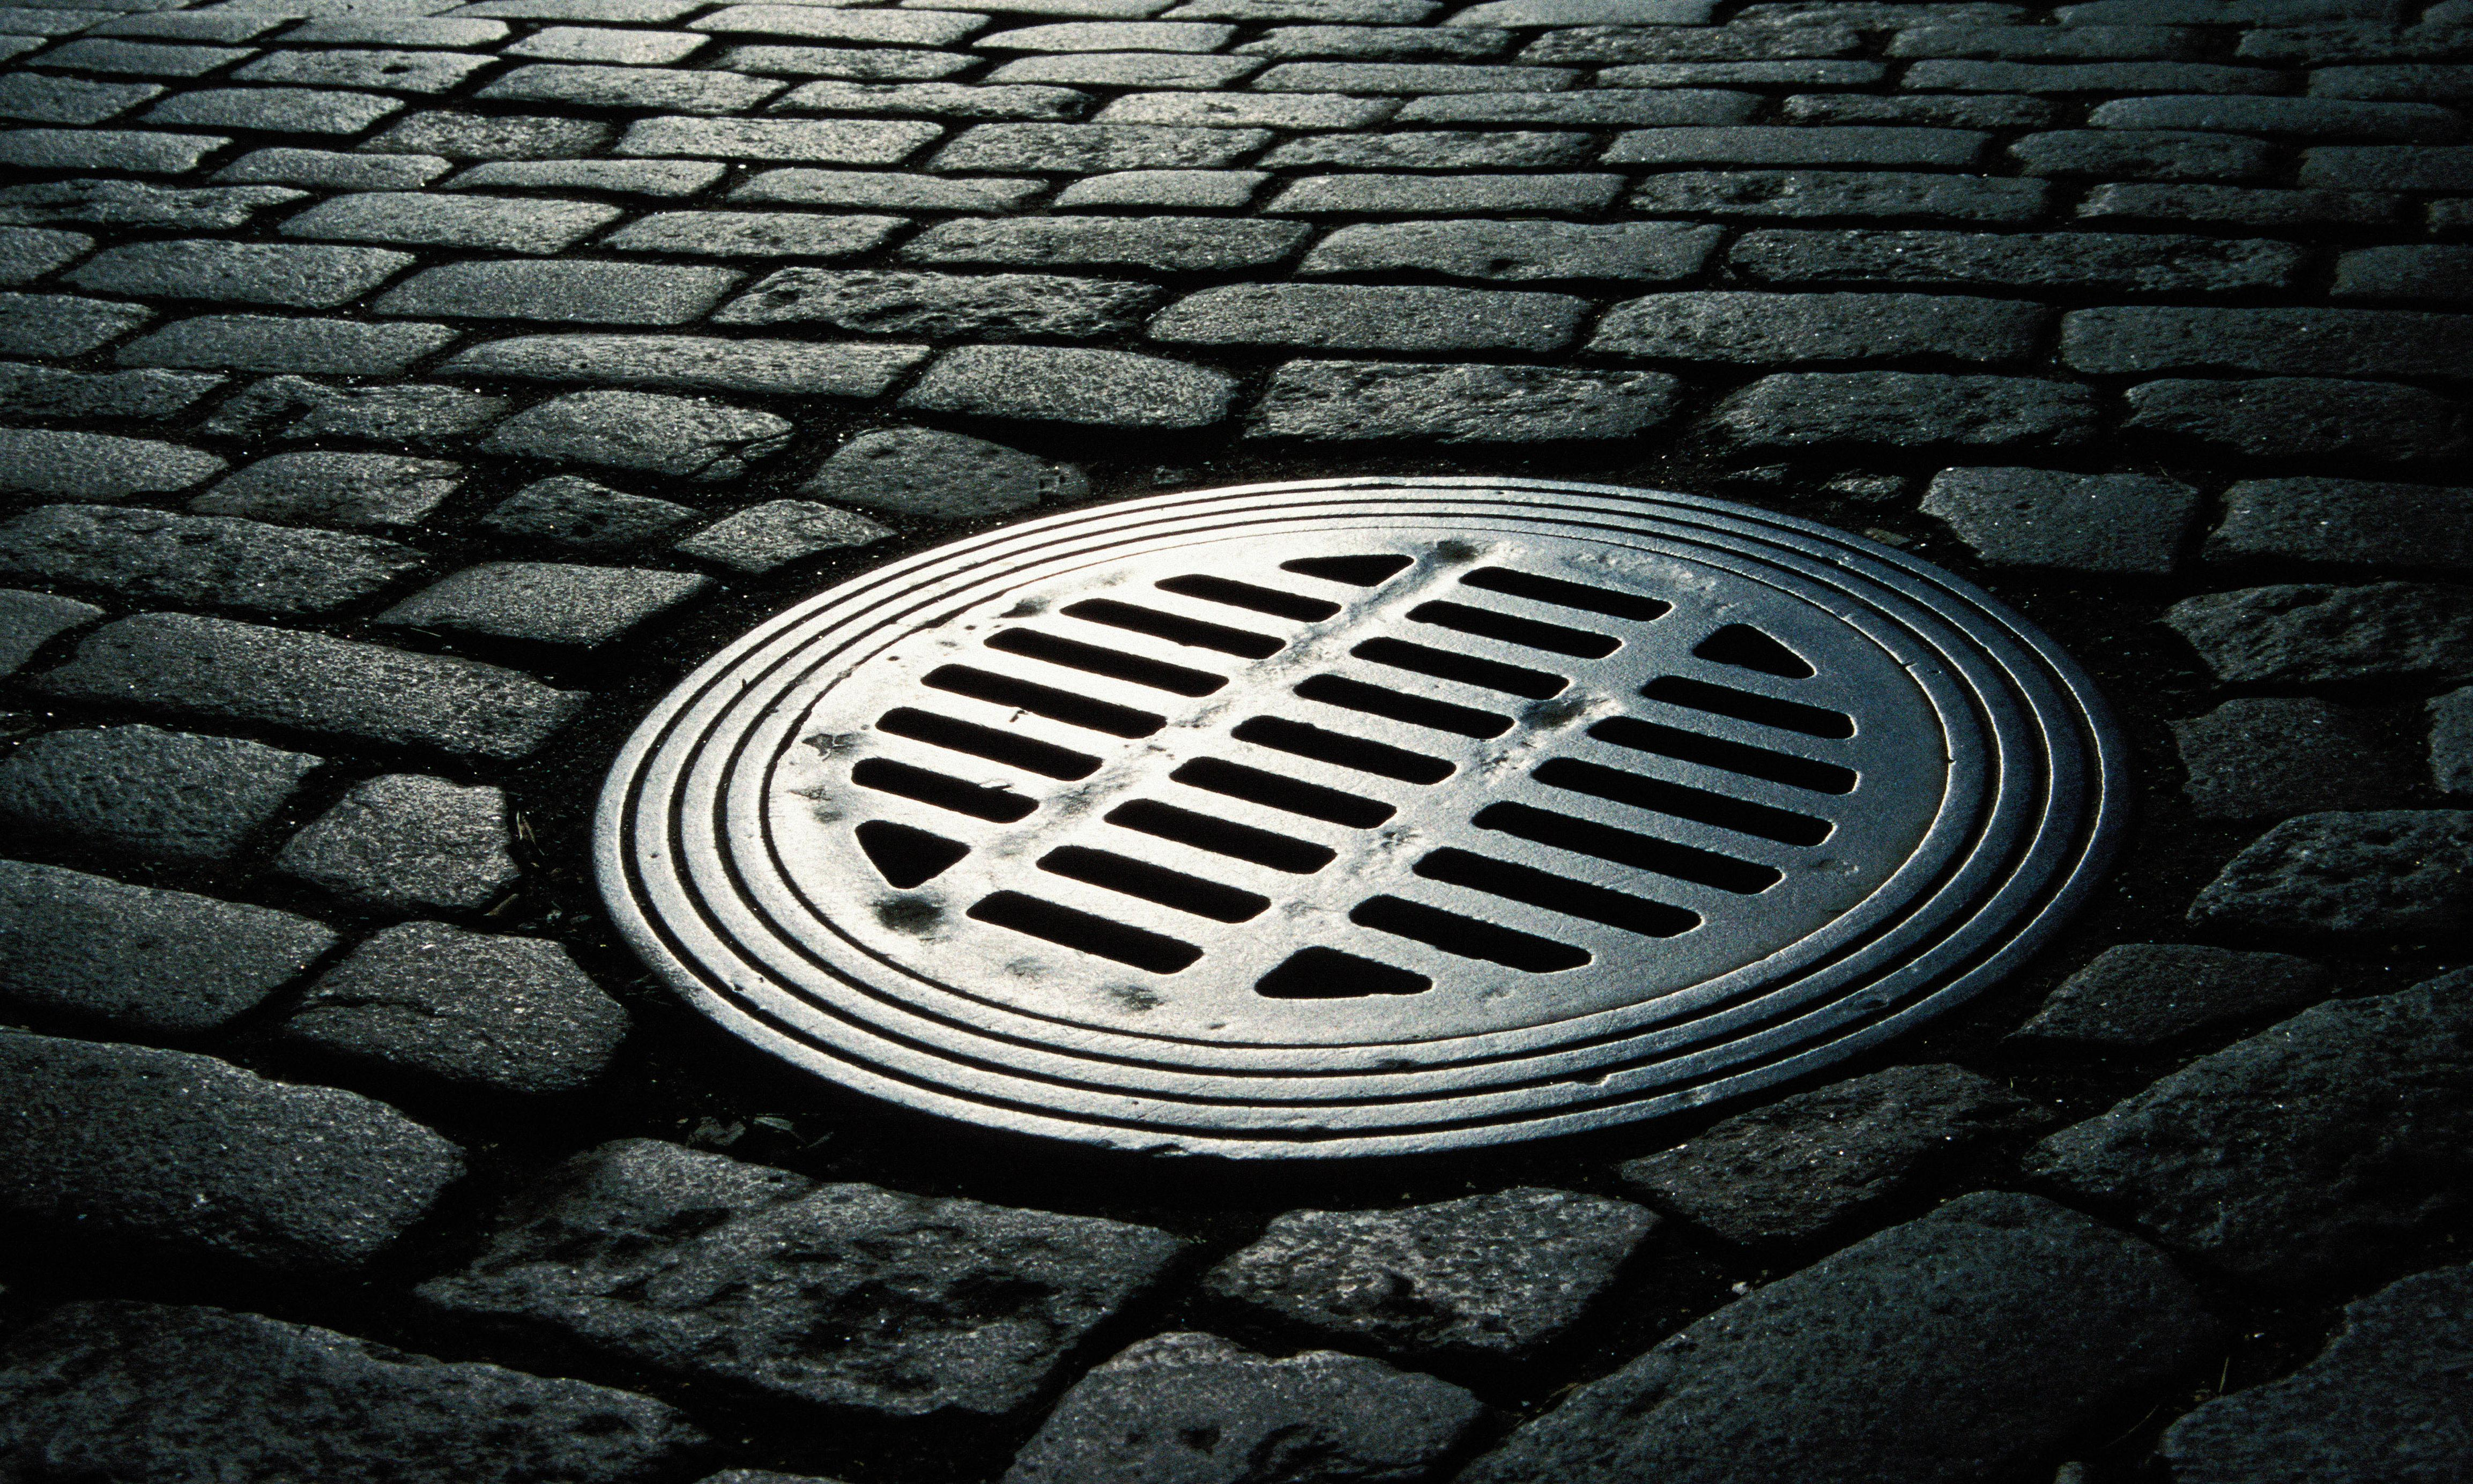 Manholes or maintenance holes? The city rejecting gendered language